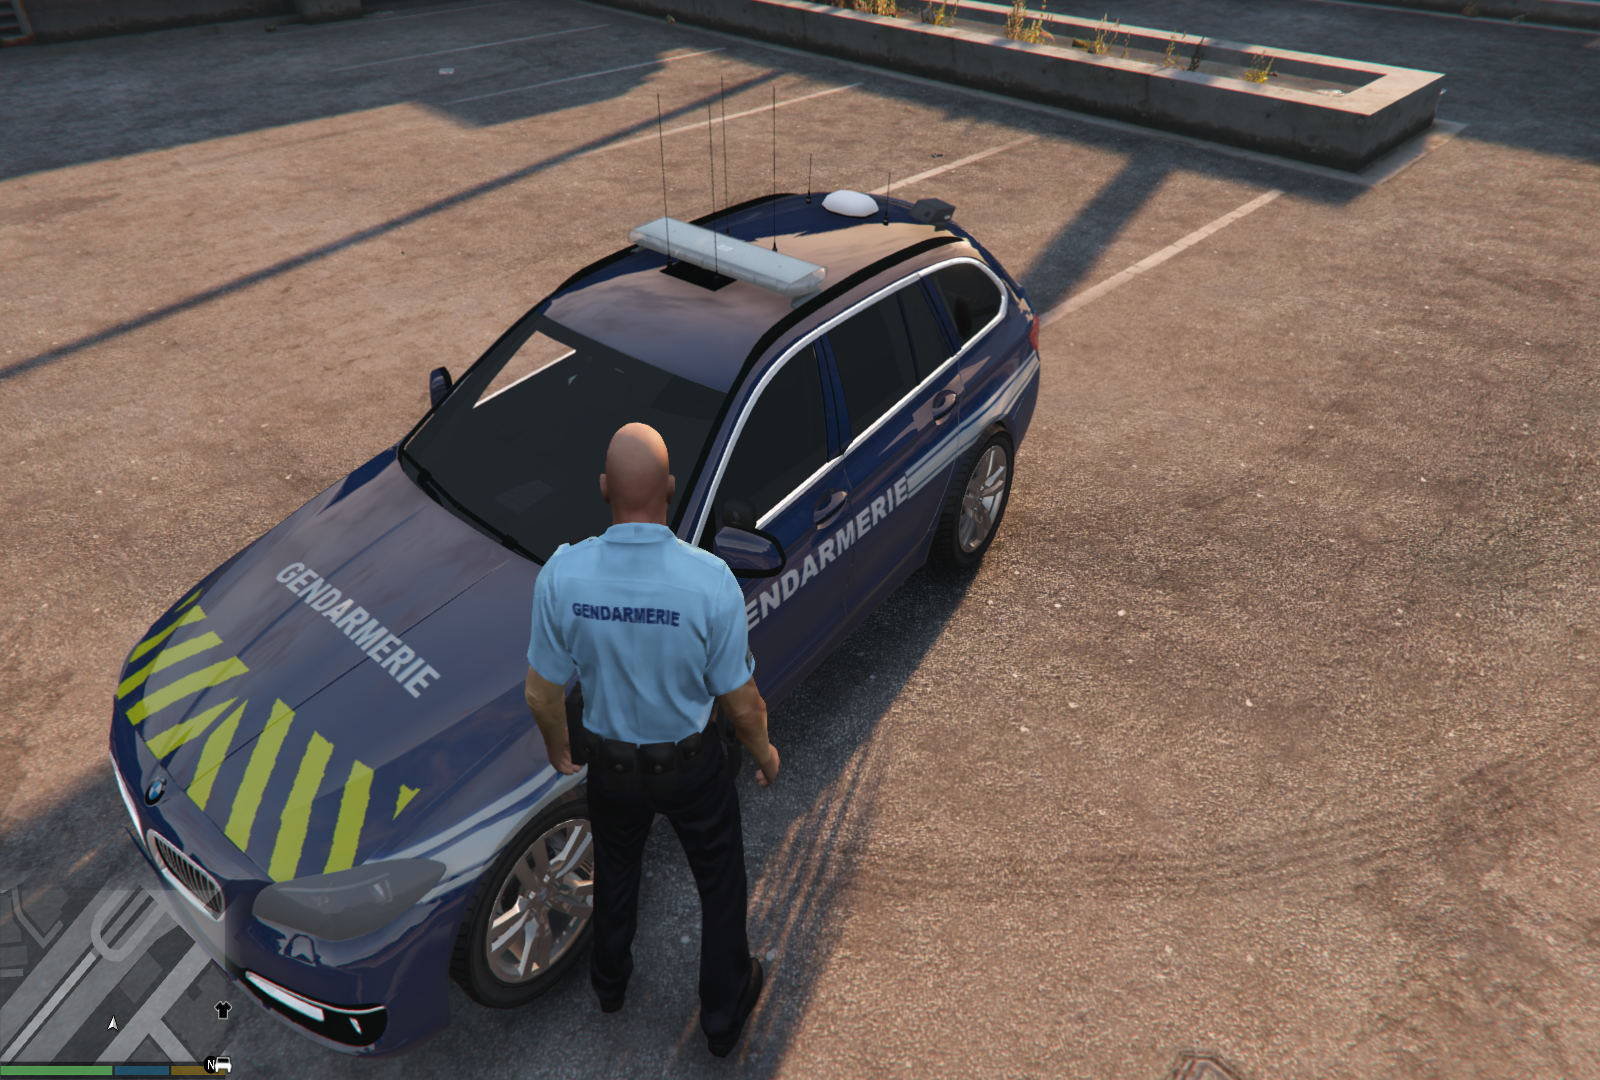 bmw gendarmerie vehicules pour gta v sur gta modding. Black Bedroom Furniture Sets. Home Design Ideas